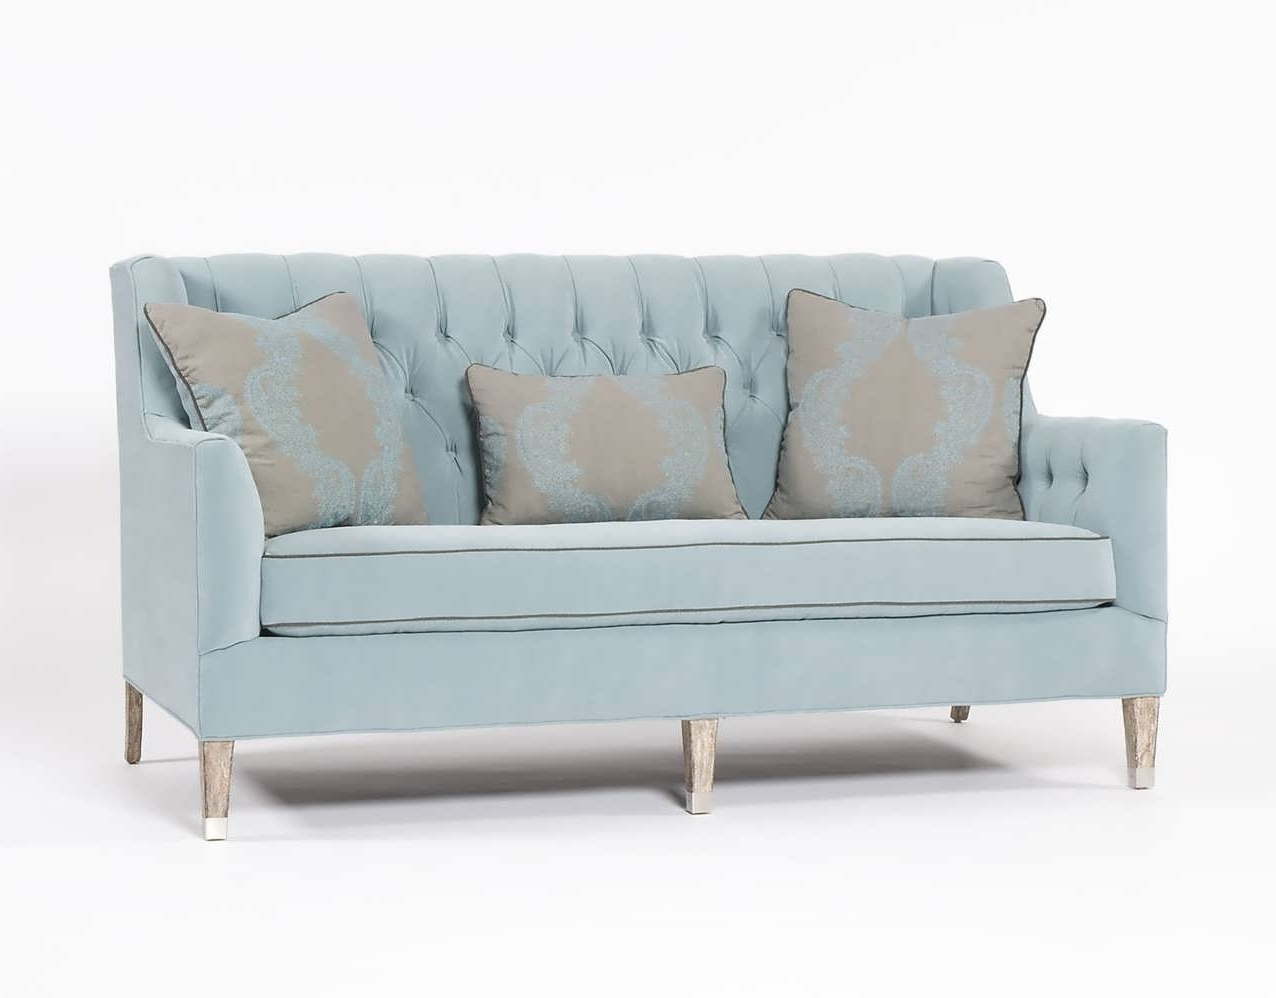 Well Known Chaise Lounge Slipcovers With Regard To Sofa : Chaise Lounge Slipcover Navy Blue Tufted Sofa Navy Blue (View 15 of 15)